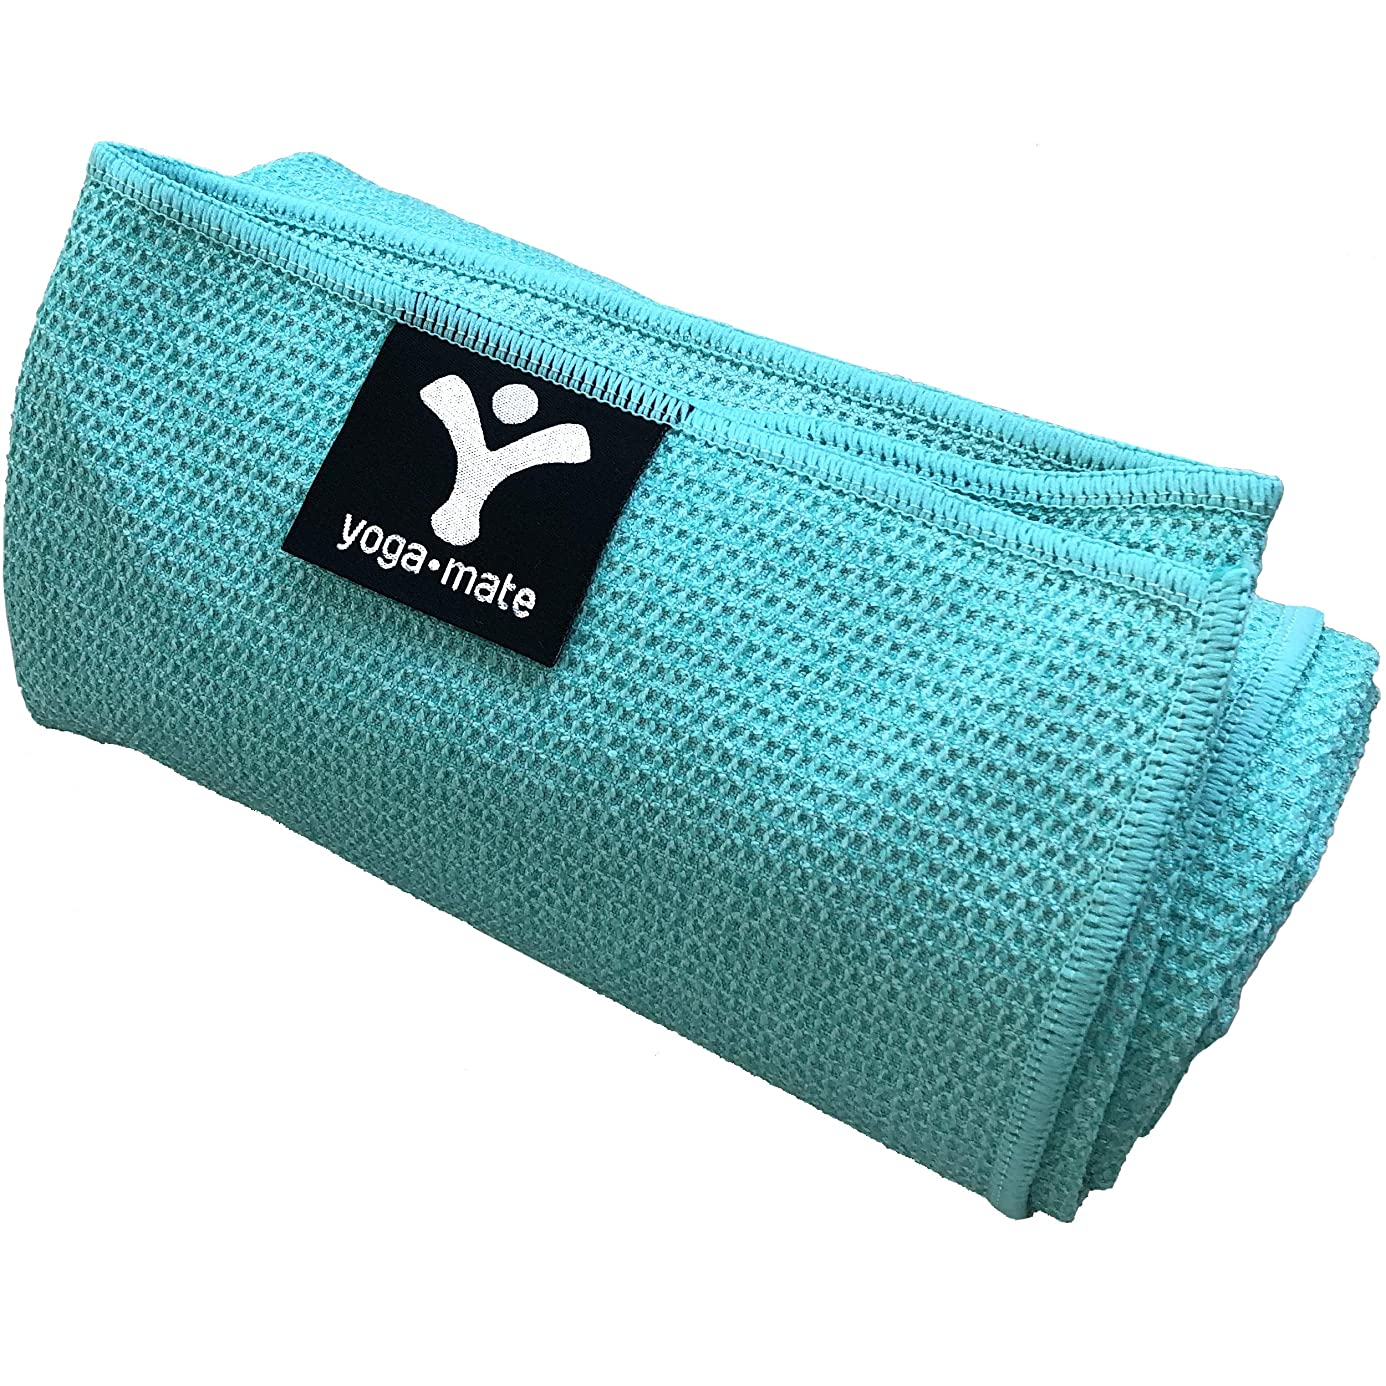 Yoga Mate Sticky Grip Yoga Towel The Best Non-Slip Towel for Hot Yoga - Anti-Slipping, Sweat Absorbent Microfiber Towels with Silicone Grip Bottom - Perfectly Fits Standard & XL Sized Mats